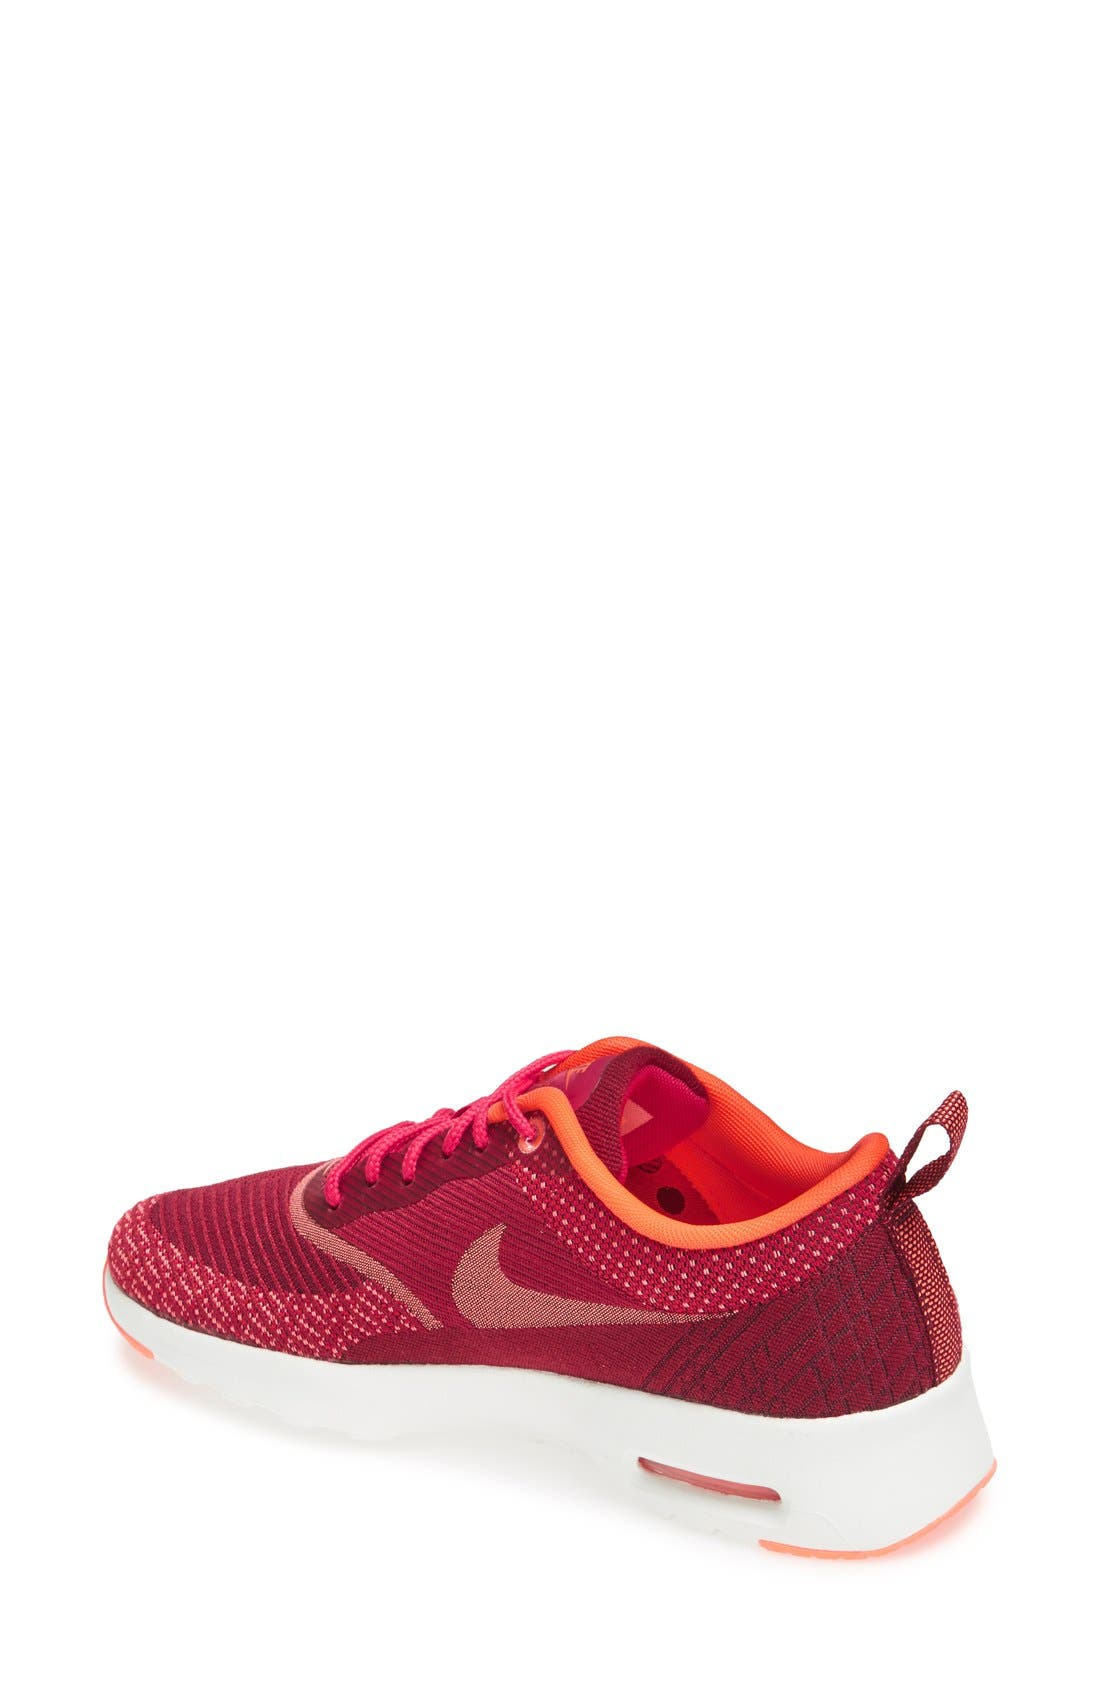 Alternate Image 2  - Nike 'Air Max Thea' Jacquard Sneaker (Women)